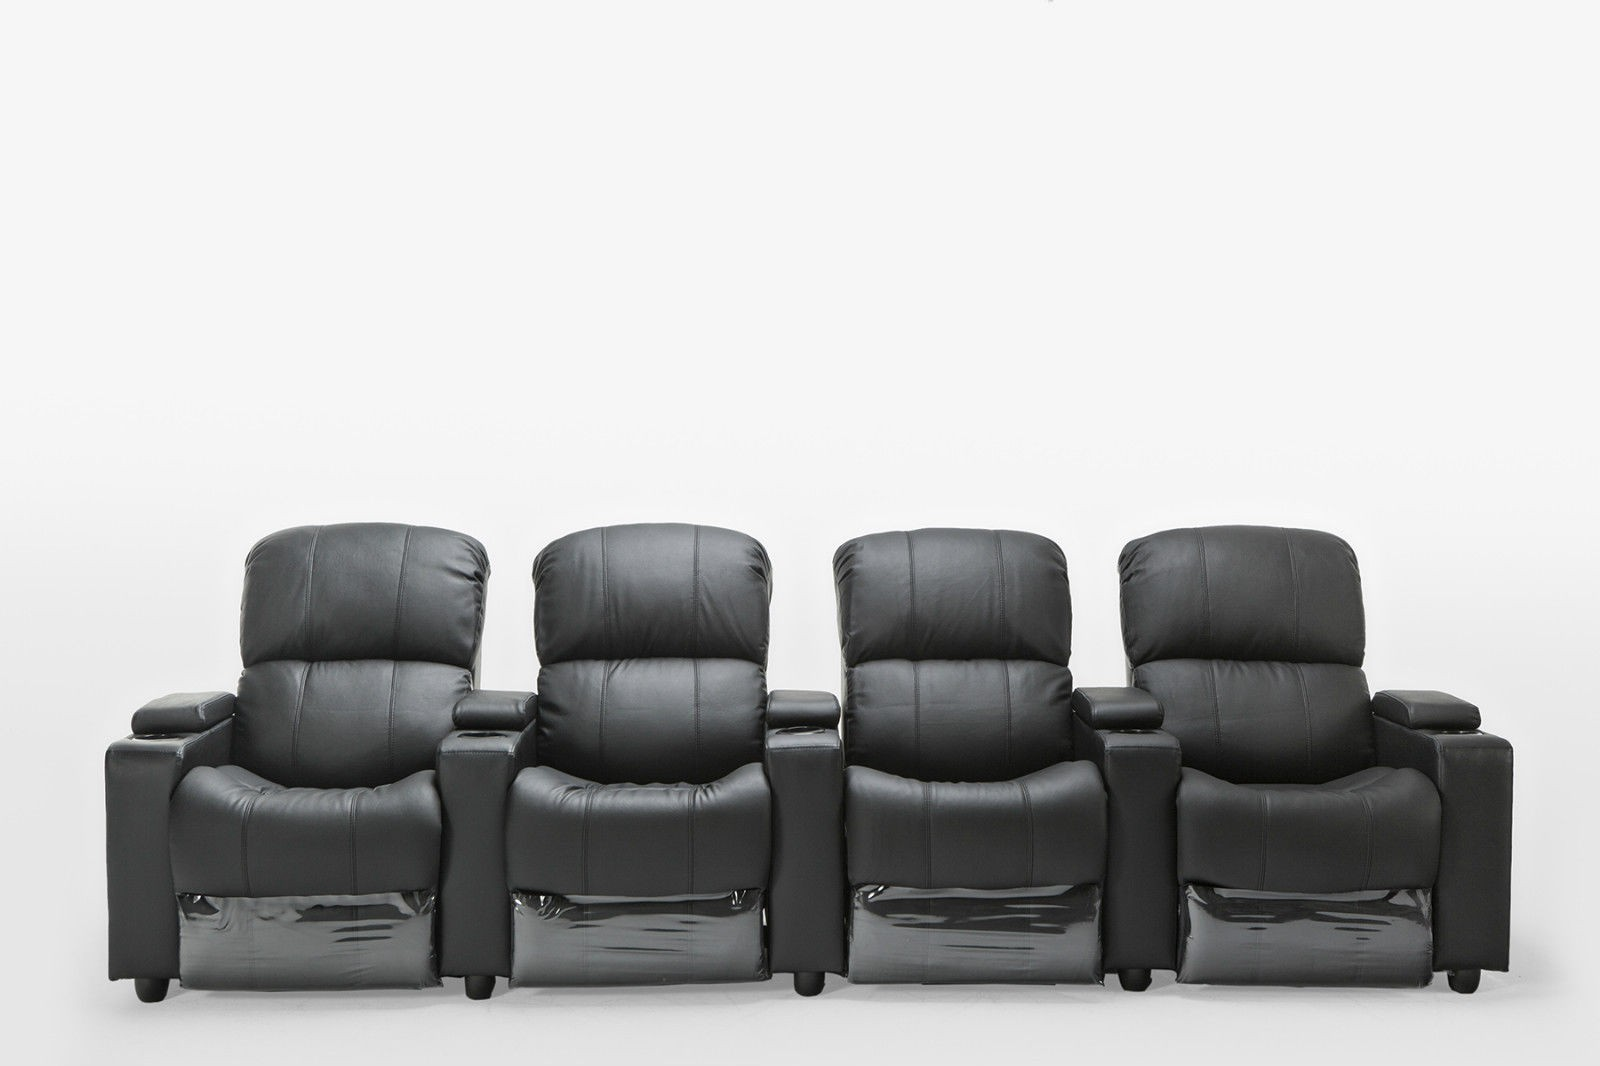 Sophie Brand New Black Leather 4 Seater Recliner Home Theatre Lounge Suite